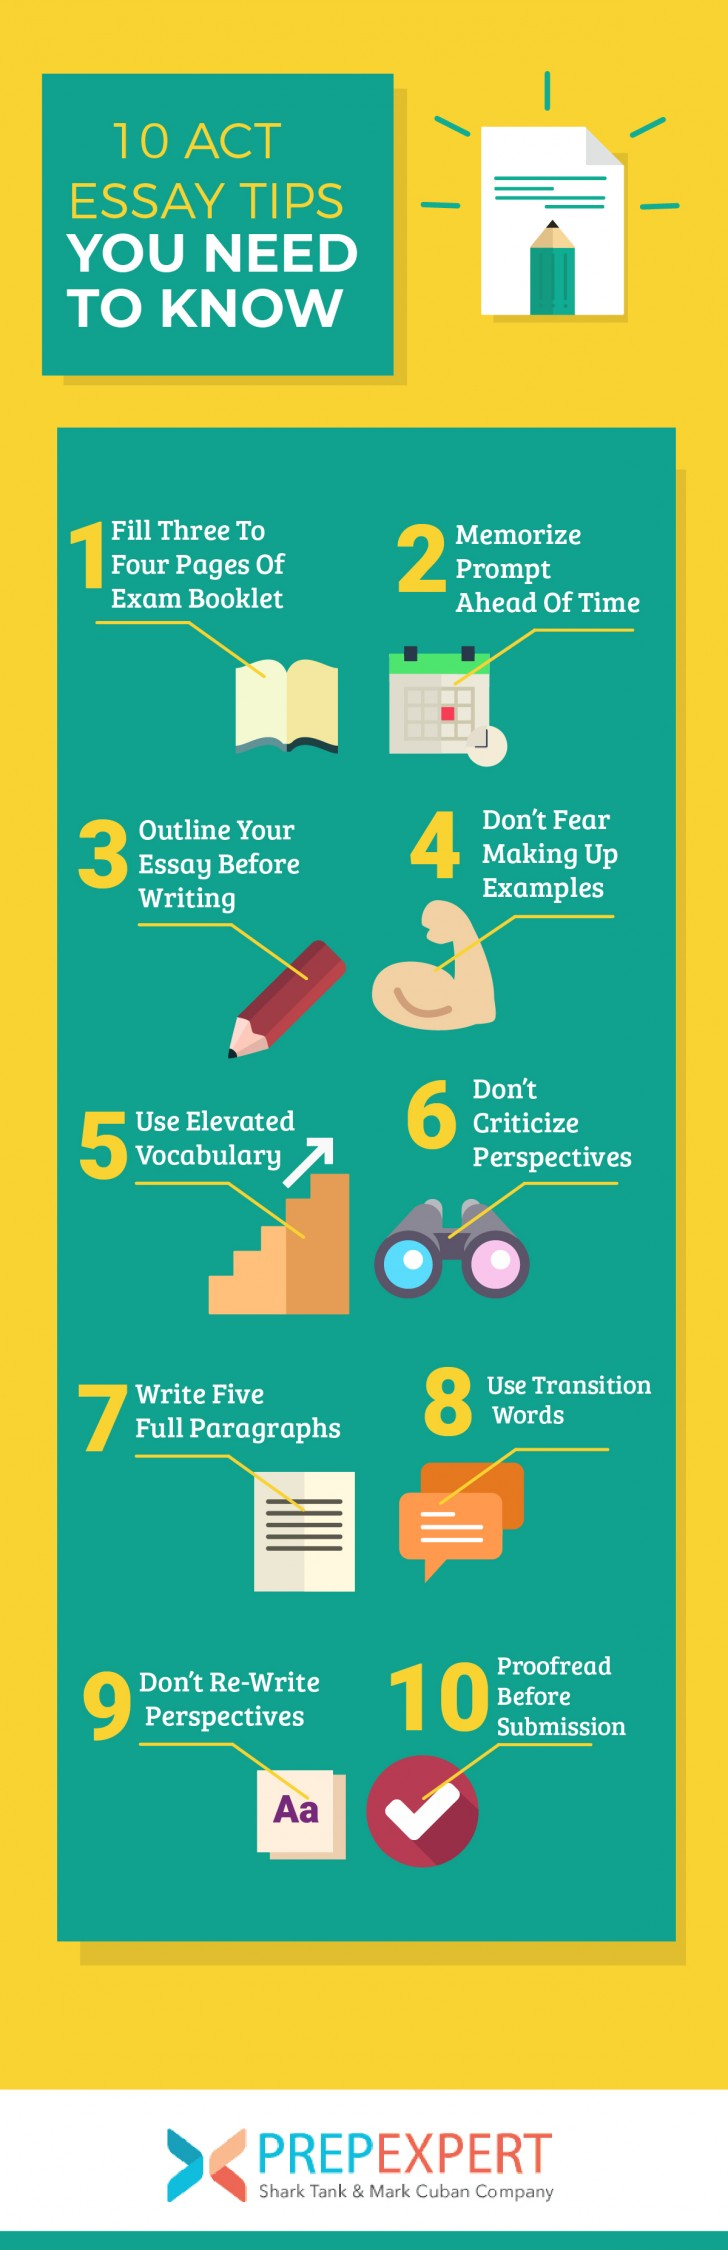 017 Essay Example Act 235585 Essayinfographics 052918 Fearsome Test Time Limit Score 8 728